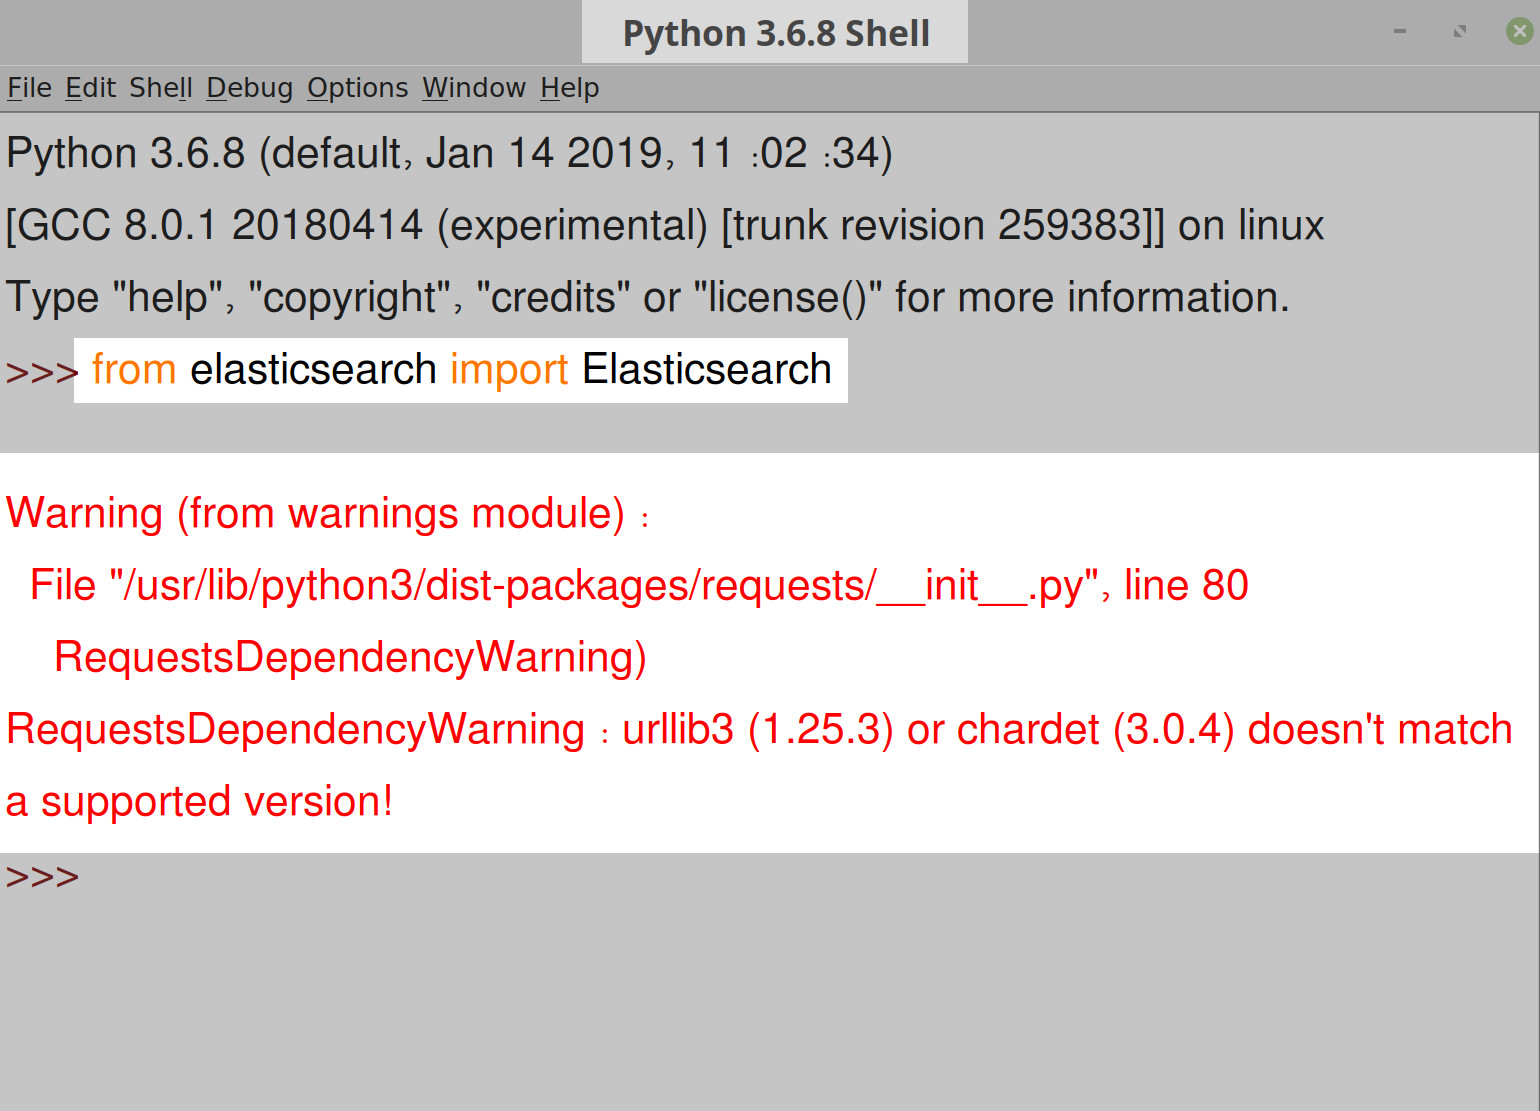 Screenshot of Python IDLE returning RequestsDependencyWarning while importing Elasticsearch